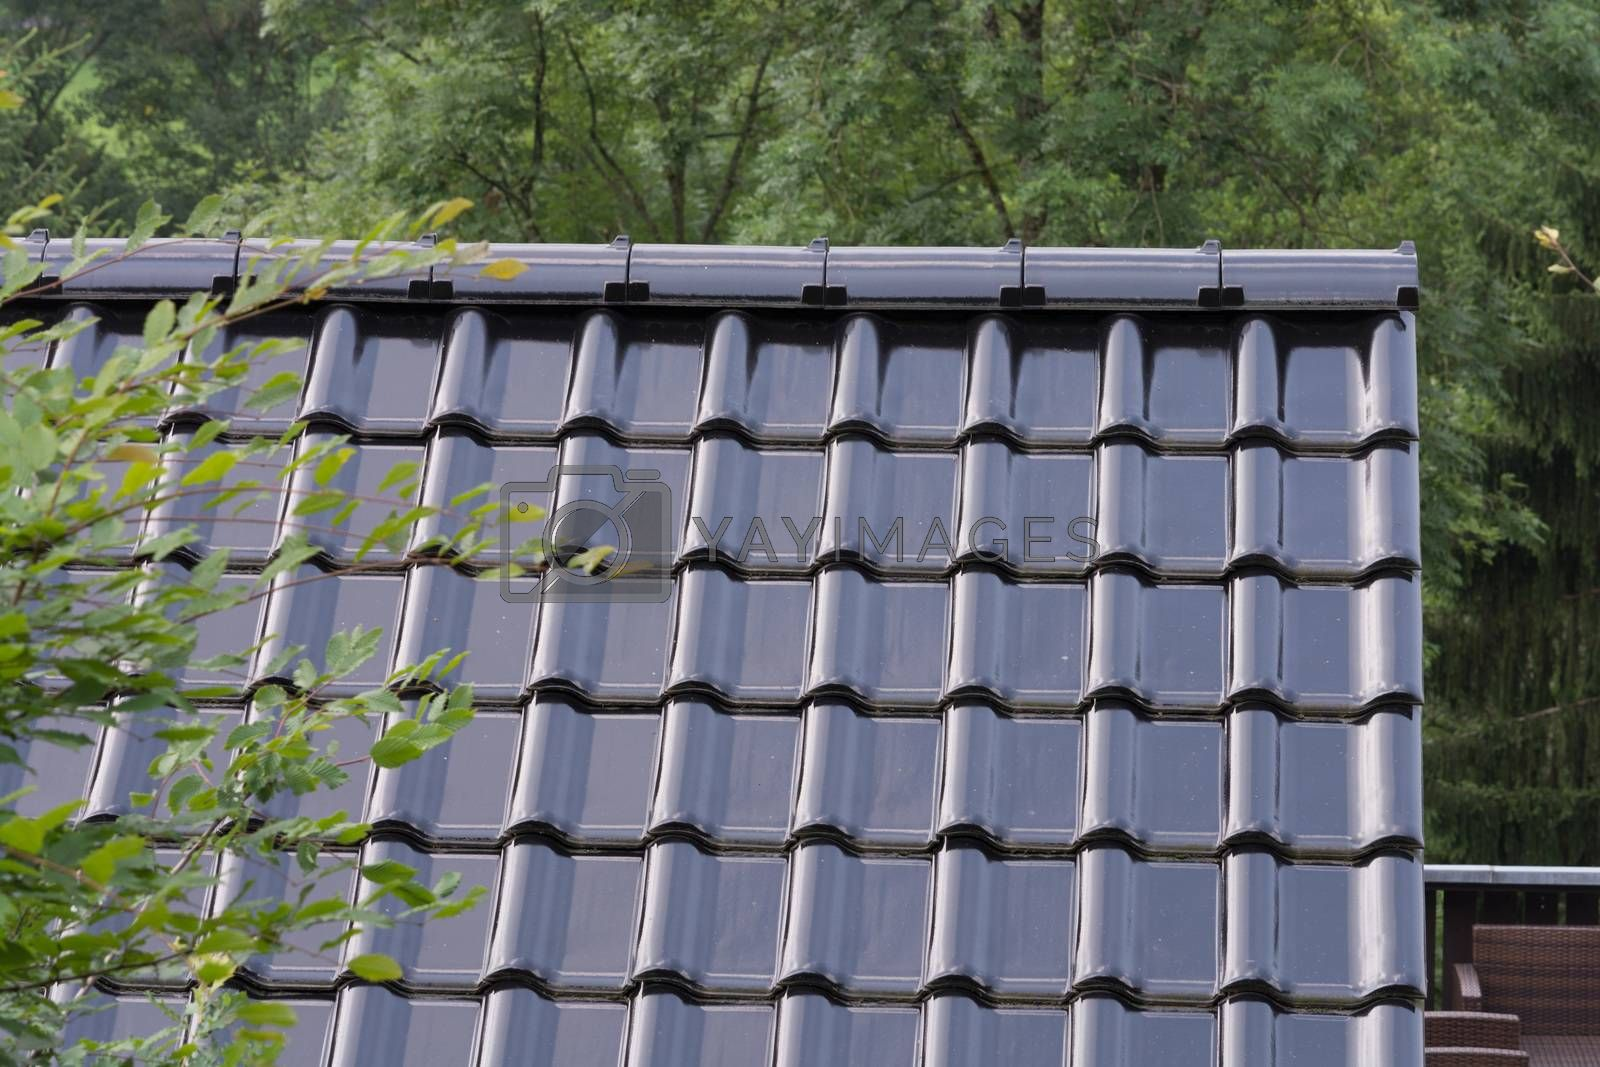 Black roof tiles on a roof             by JFsPic